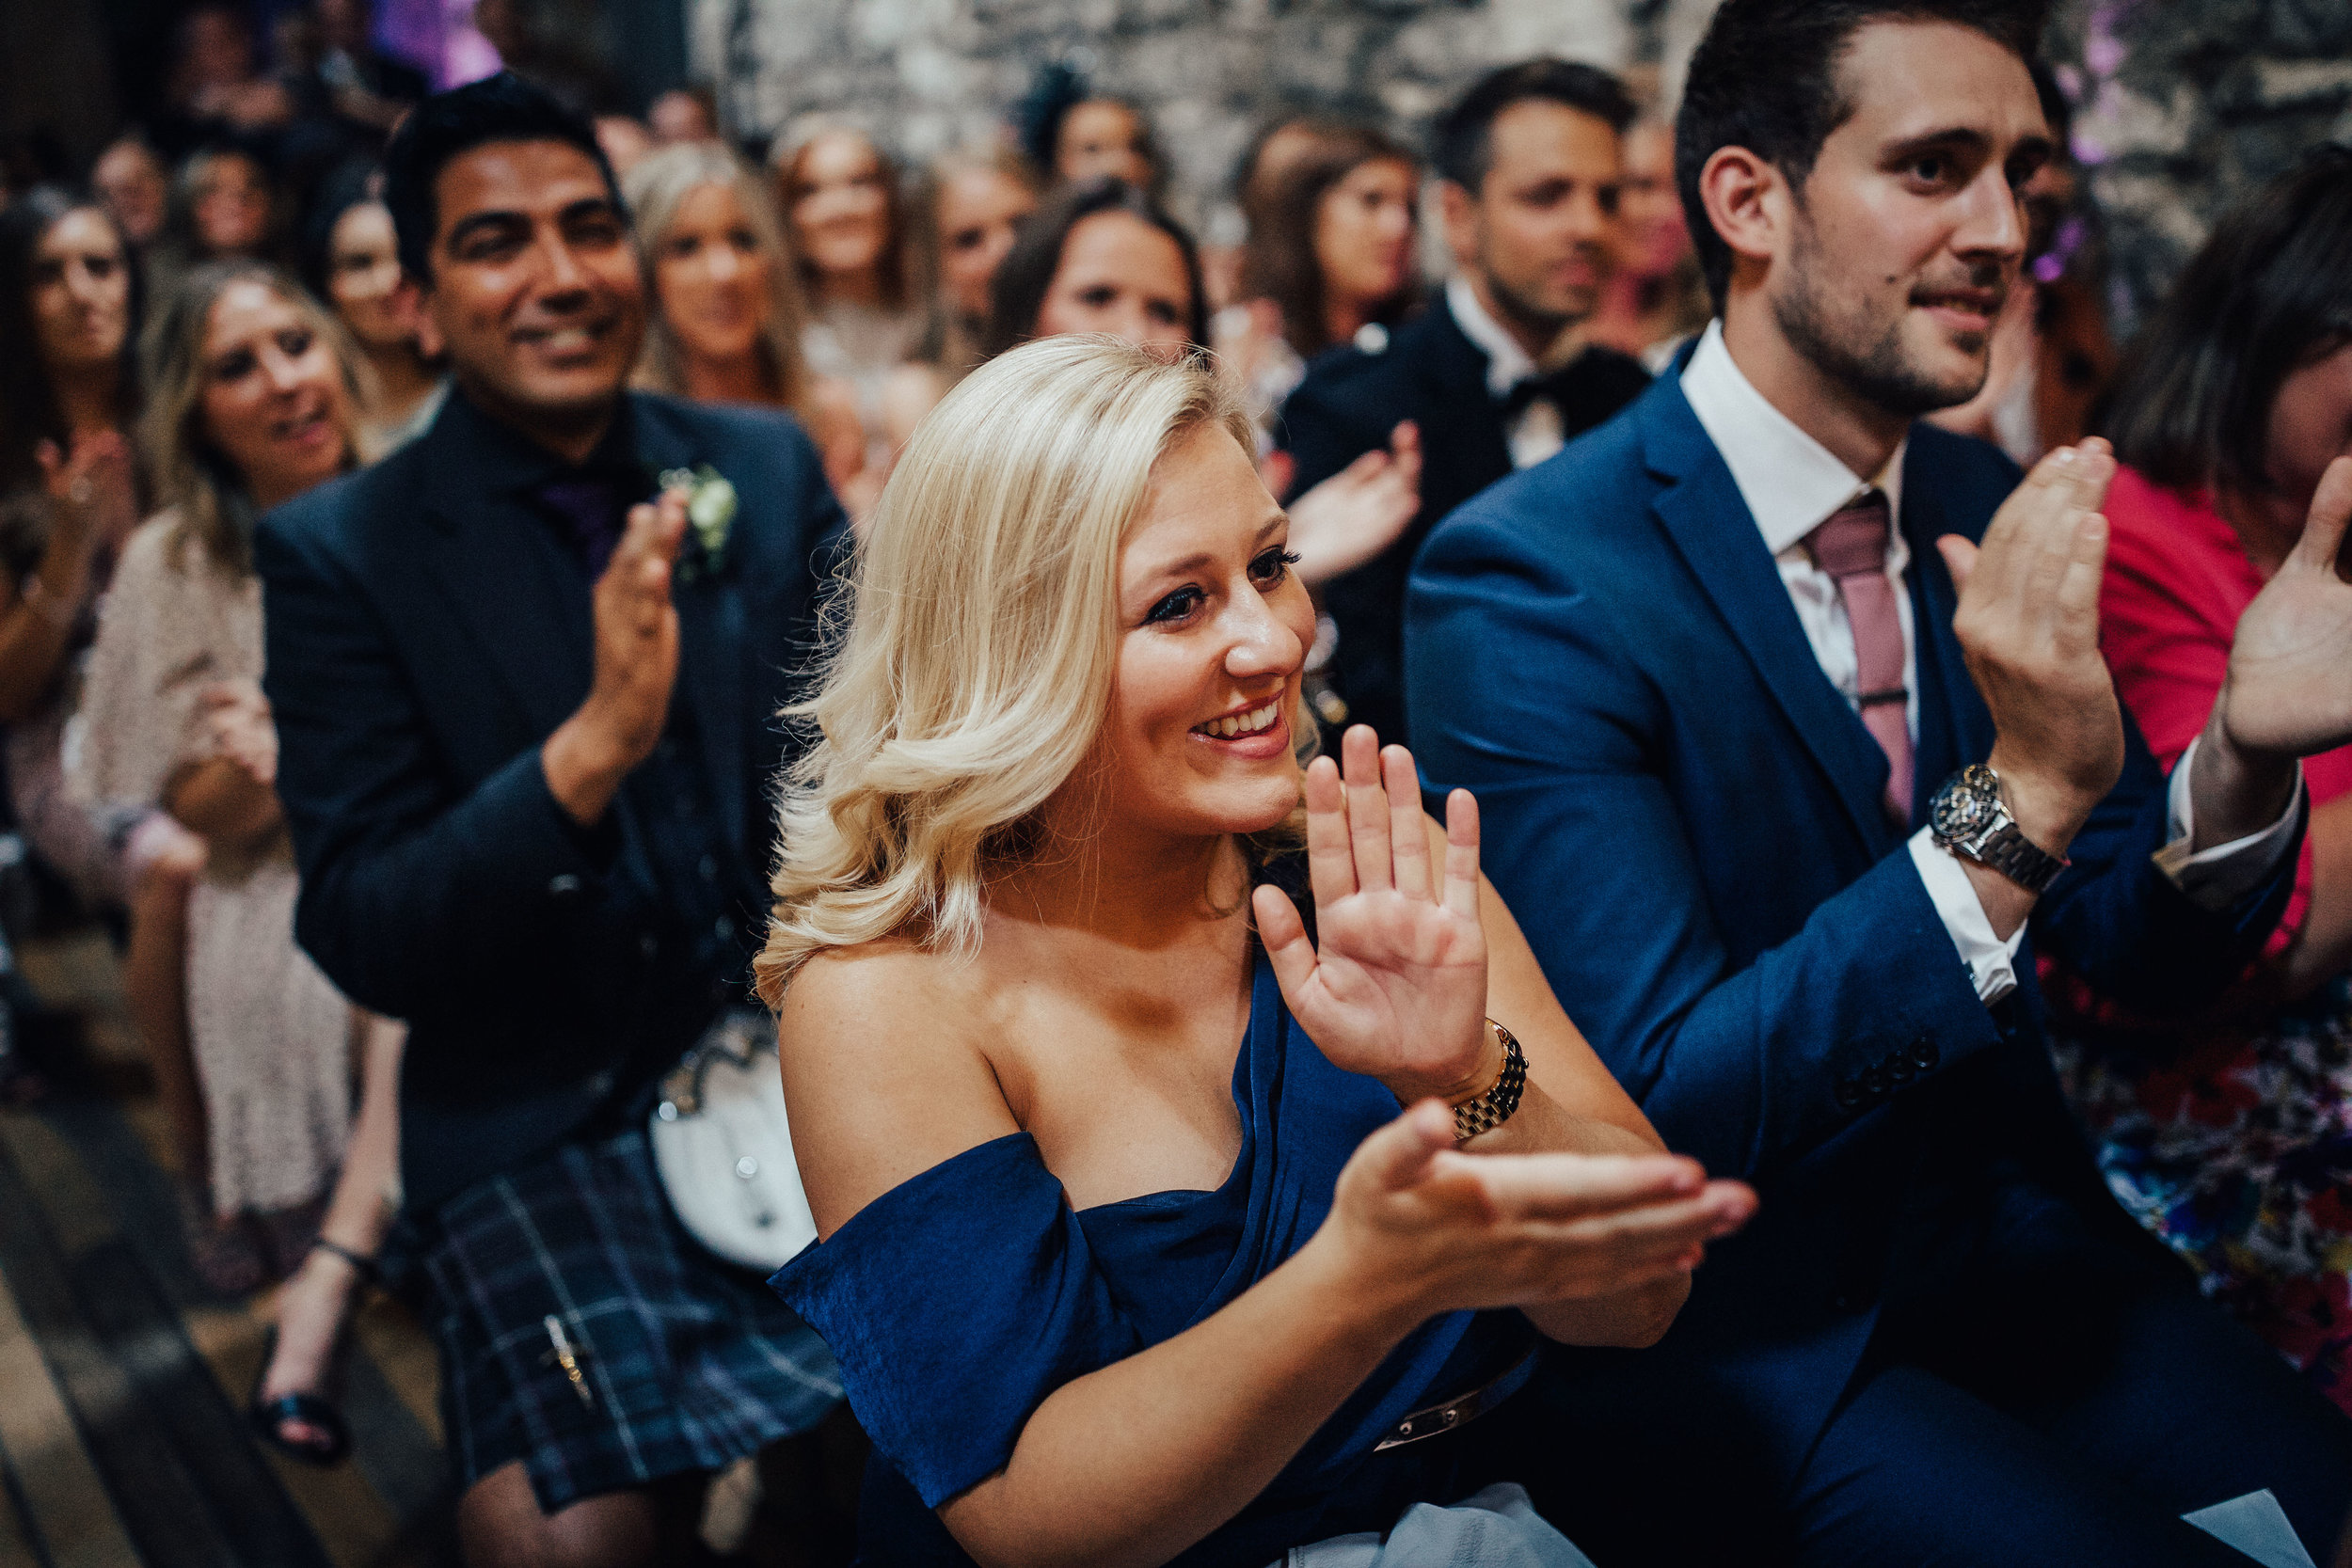 BYRE_AT_INCHYRA_WEDDING_PHOTOGRAPHER_PJ_PHILLIPS_PHOTOGRAPHY_KAYLEIGH_ANDREW_91.jpg